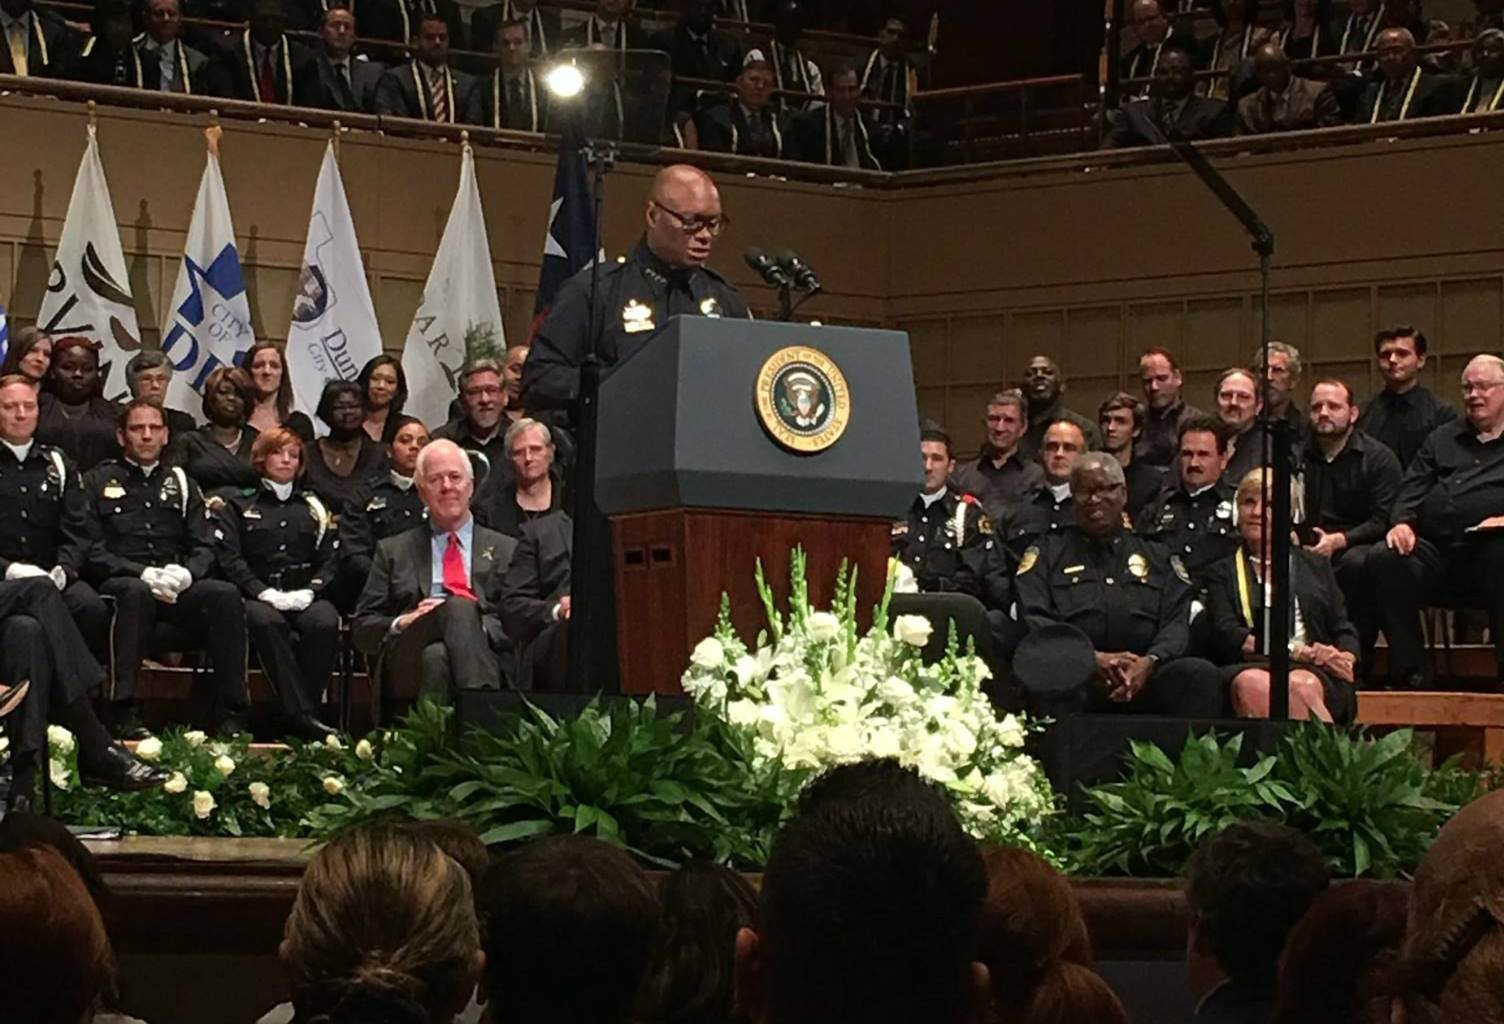 Dallas Police Chief David Brown speaks at memorial service for five slain officers. Photo credit: Dallas Police Department